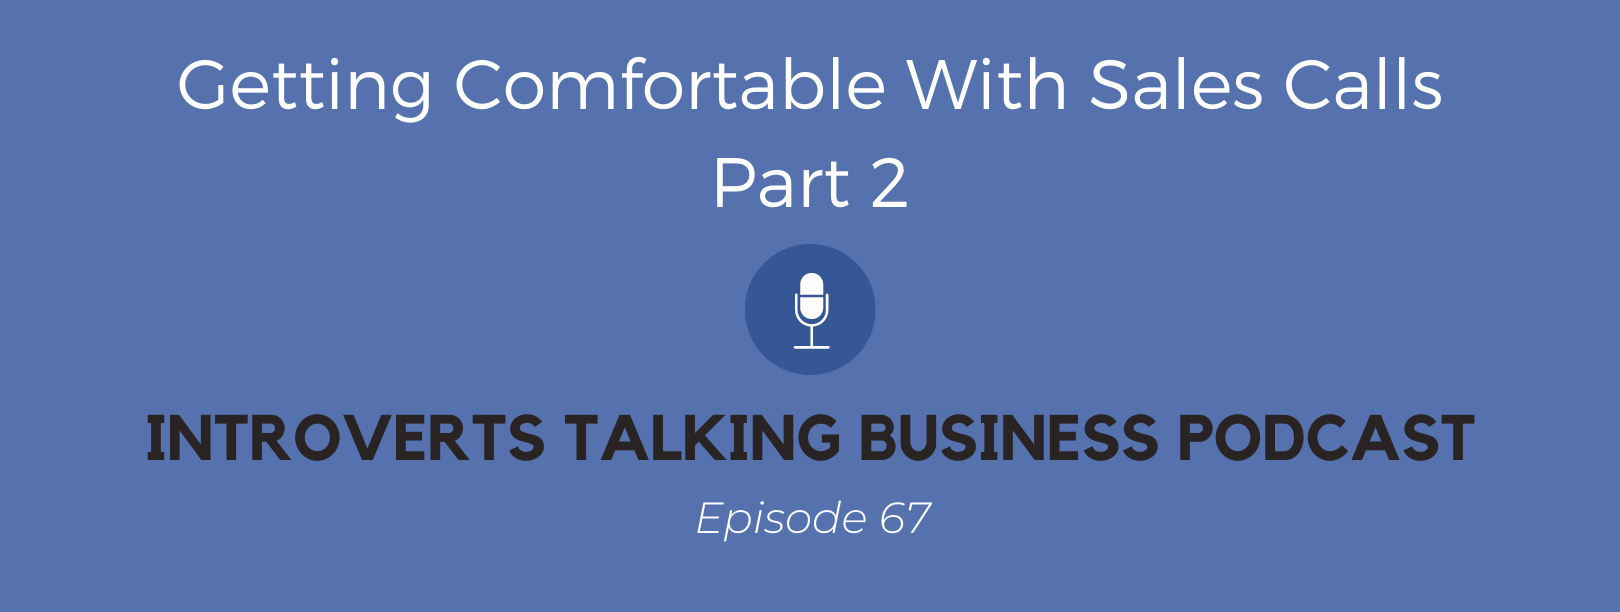 Getting Comfortable With Sales Calls, Part 2